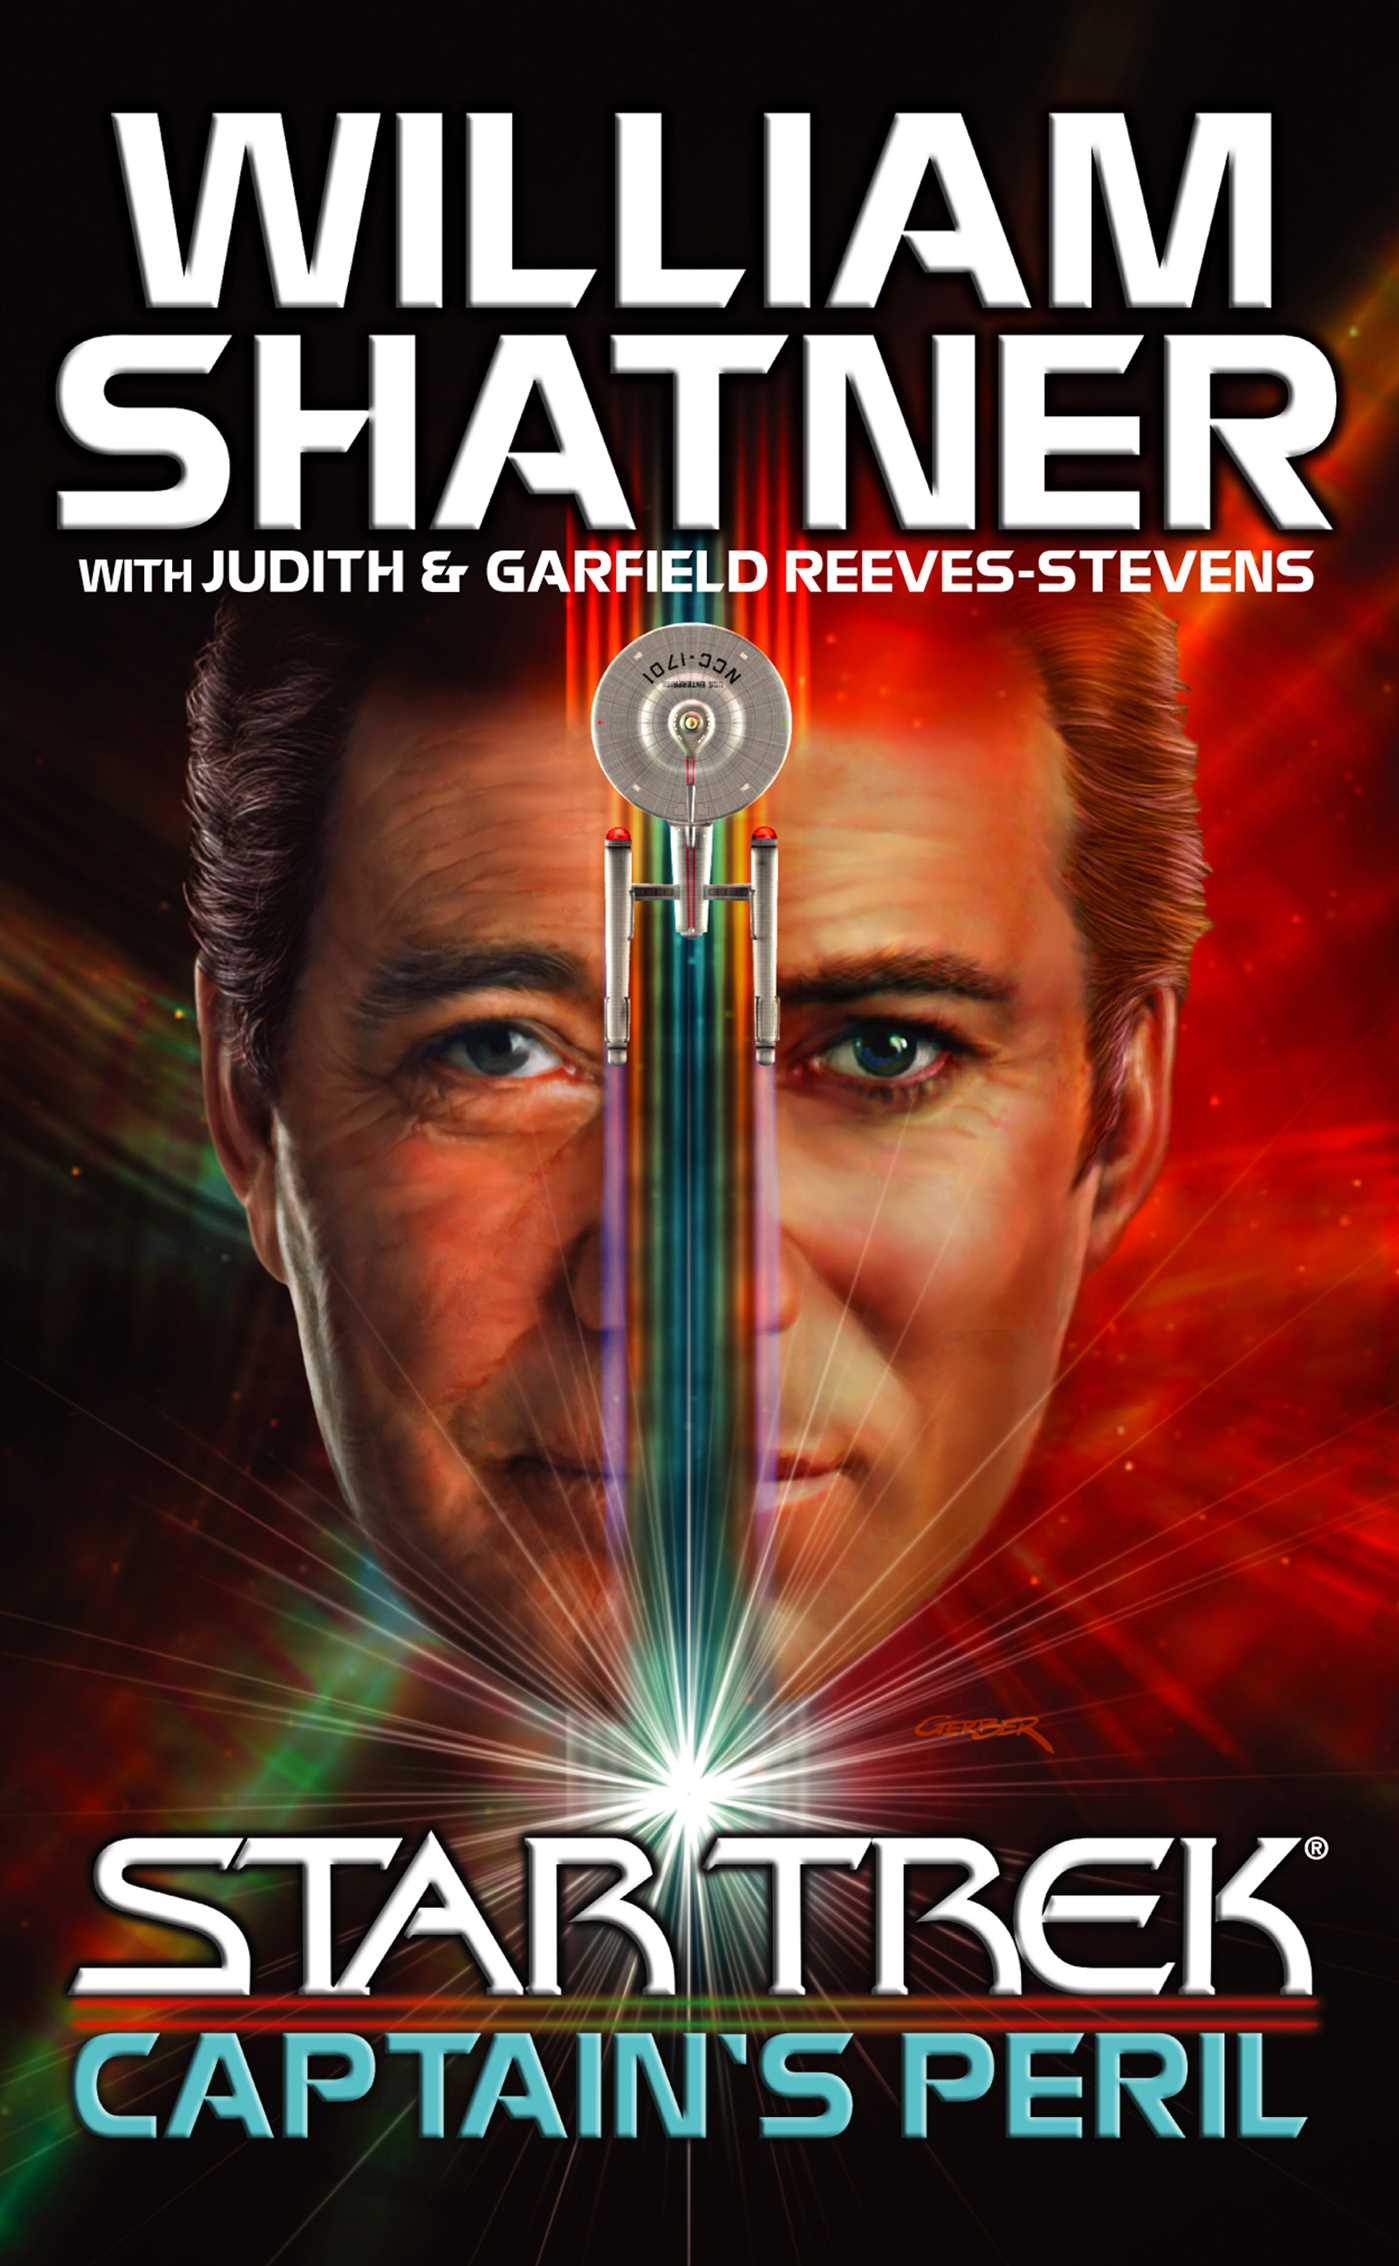 William shatner official publisher page simon schuster au book cover image jpg captains peril ebook 9781471106897 fandeluxe Ebook collections